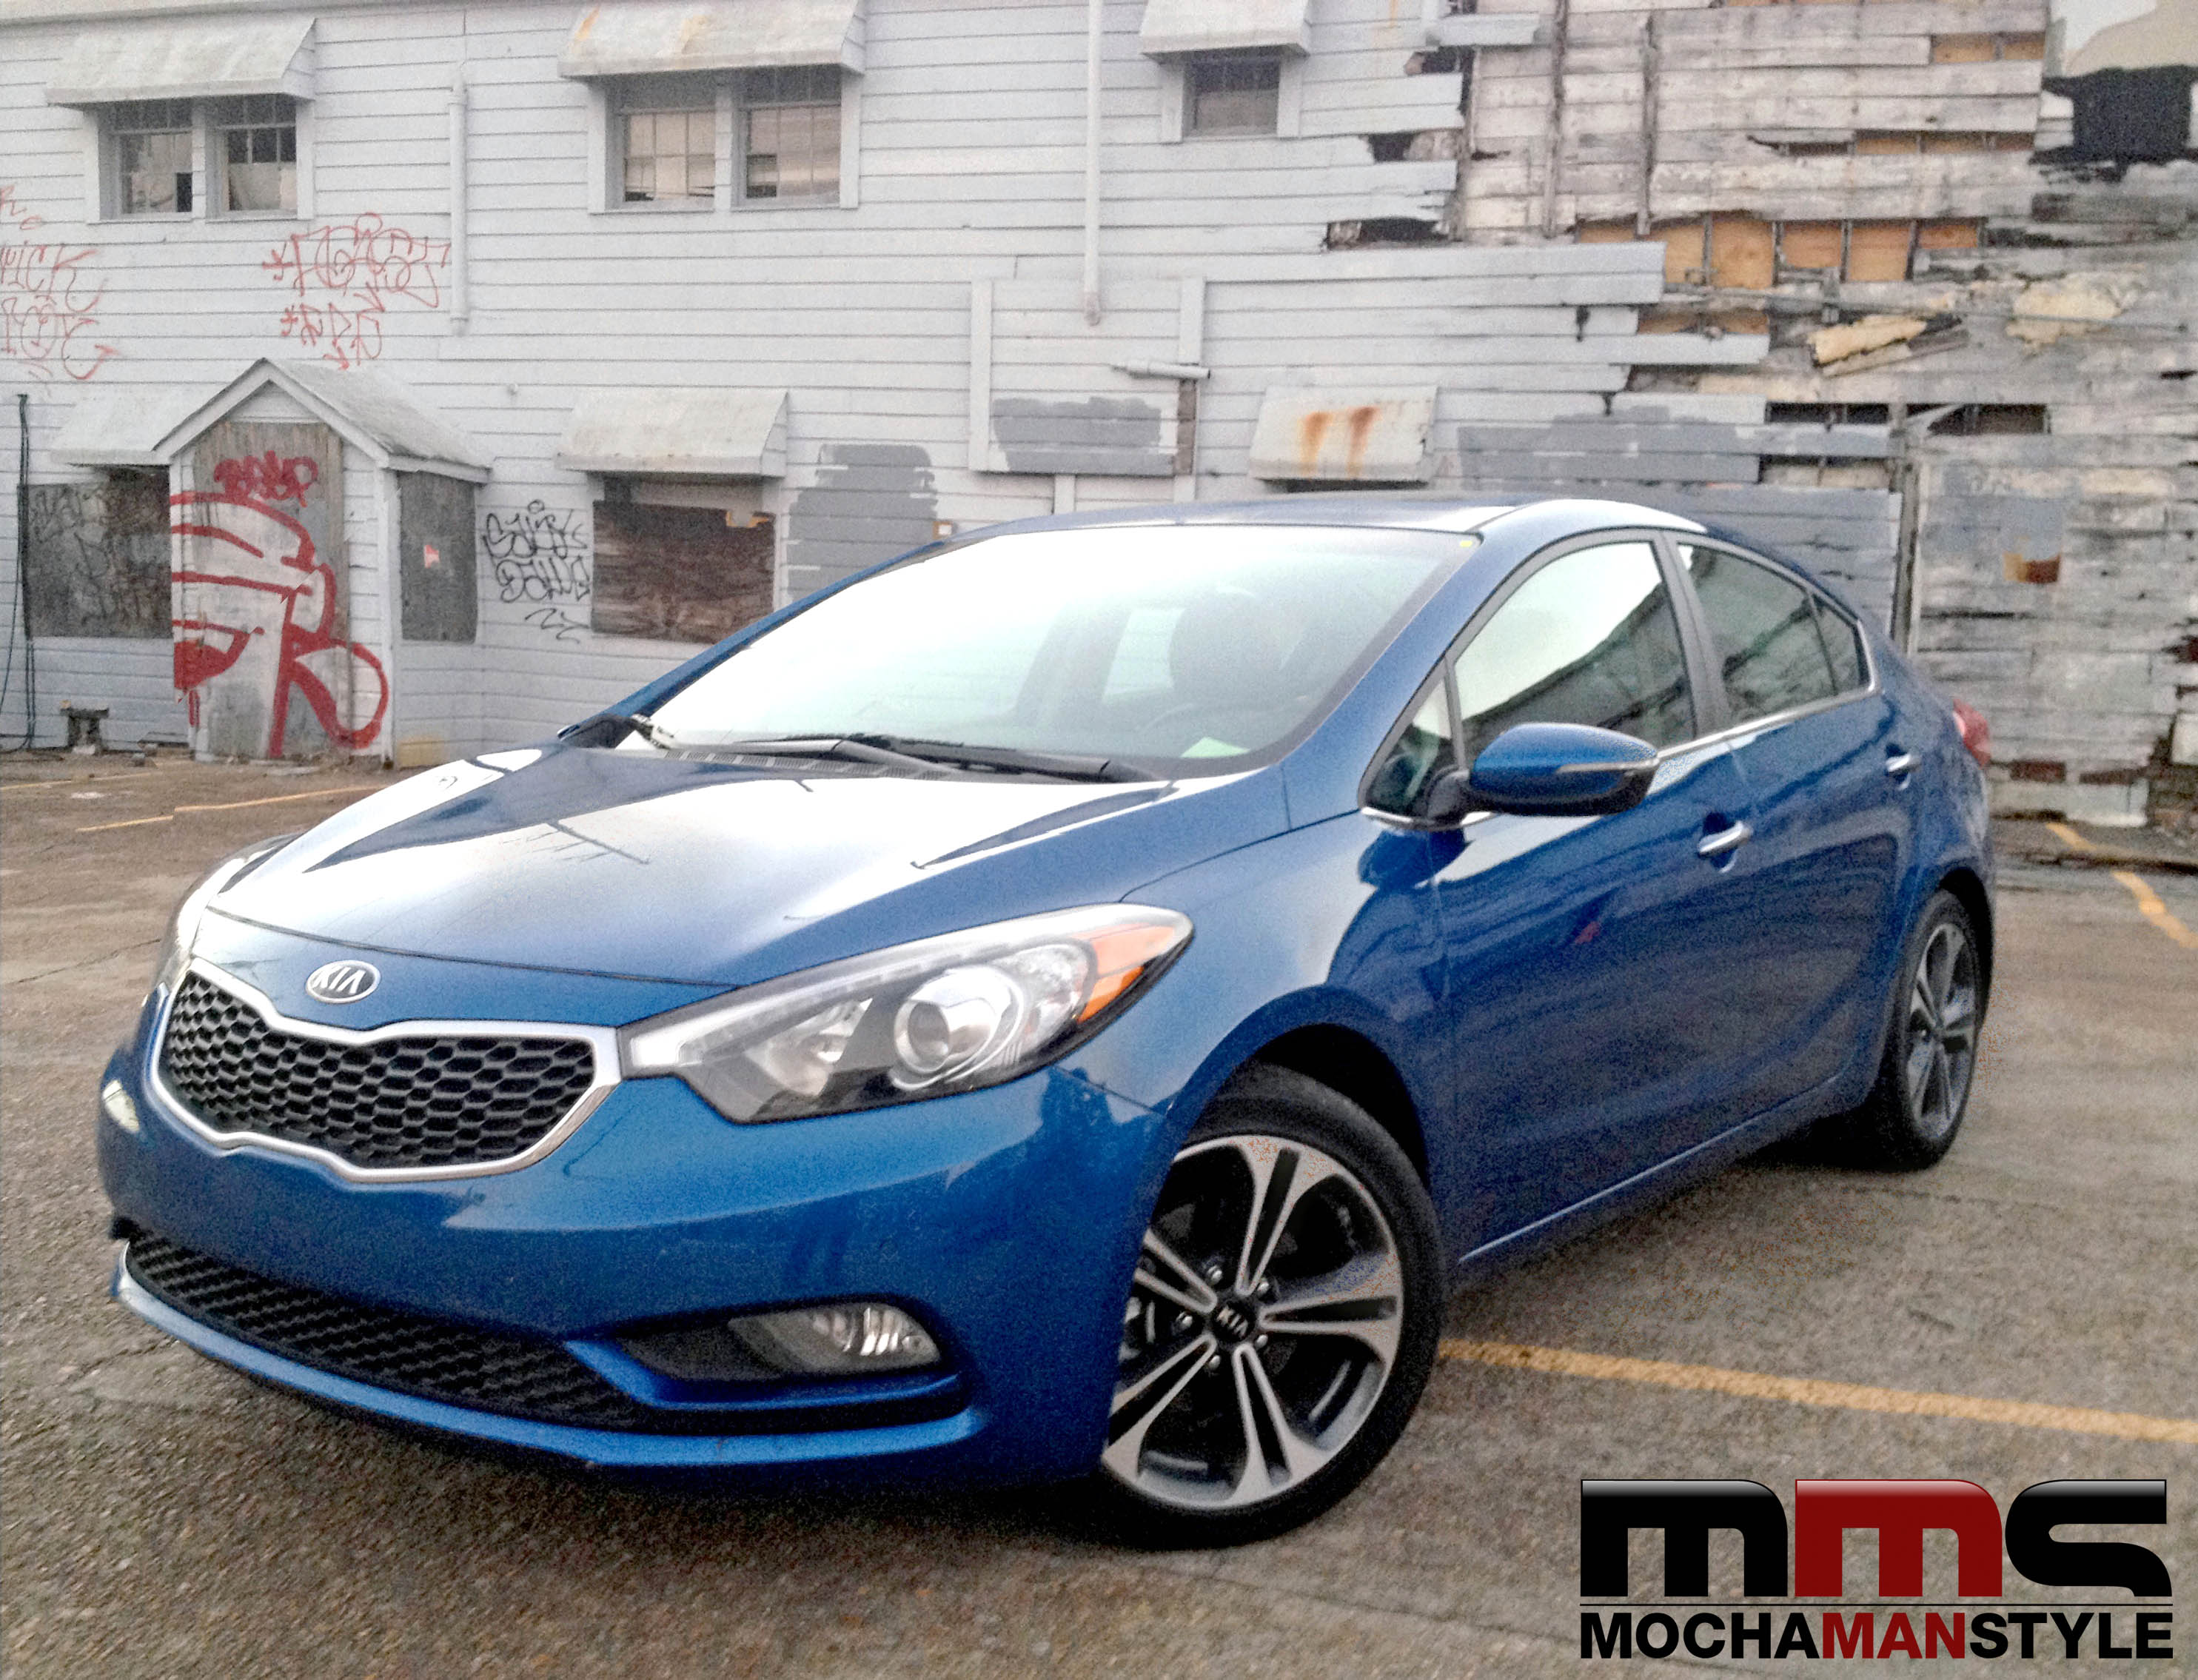 Exploring the Big Easy in the 2014 Kia Forte EX